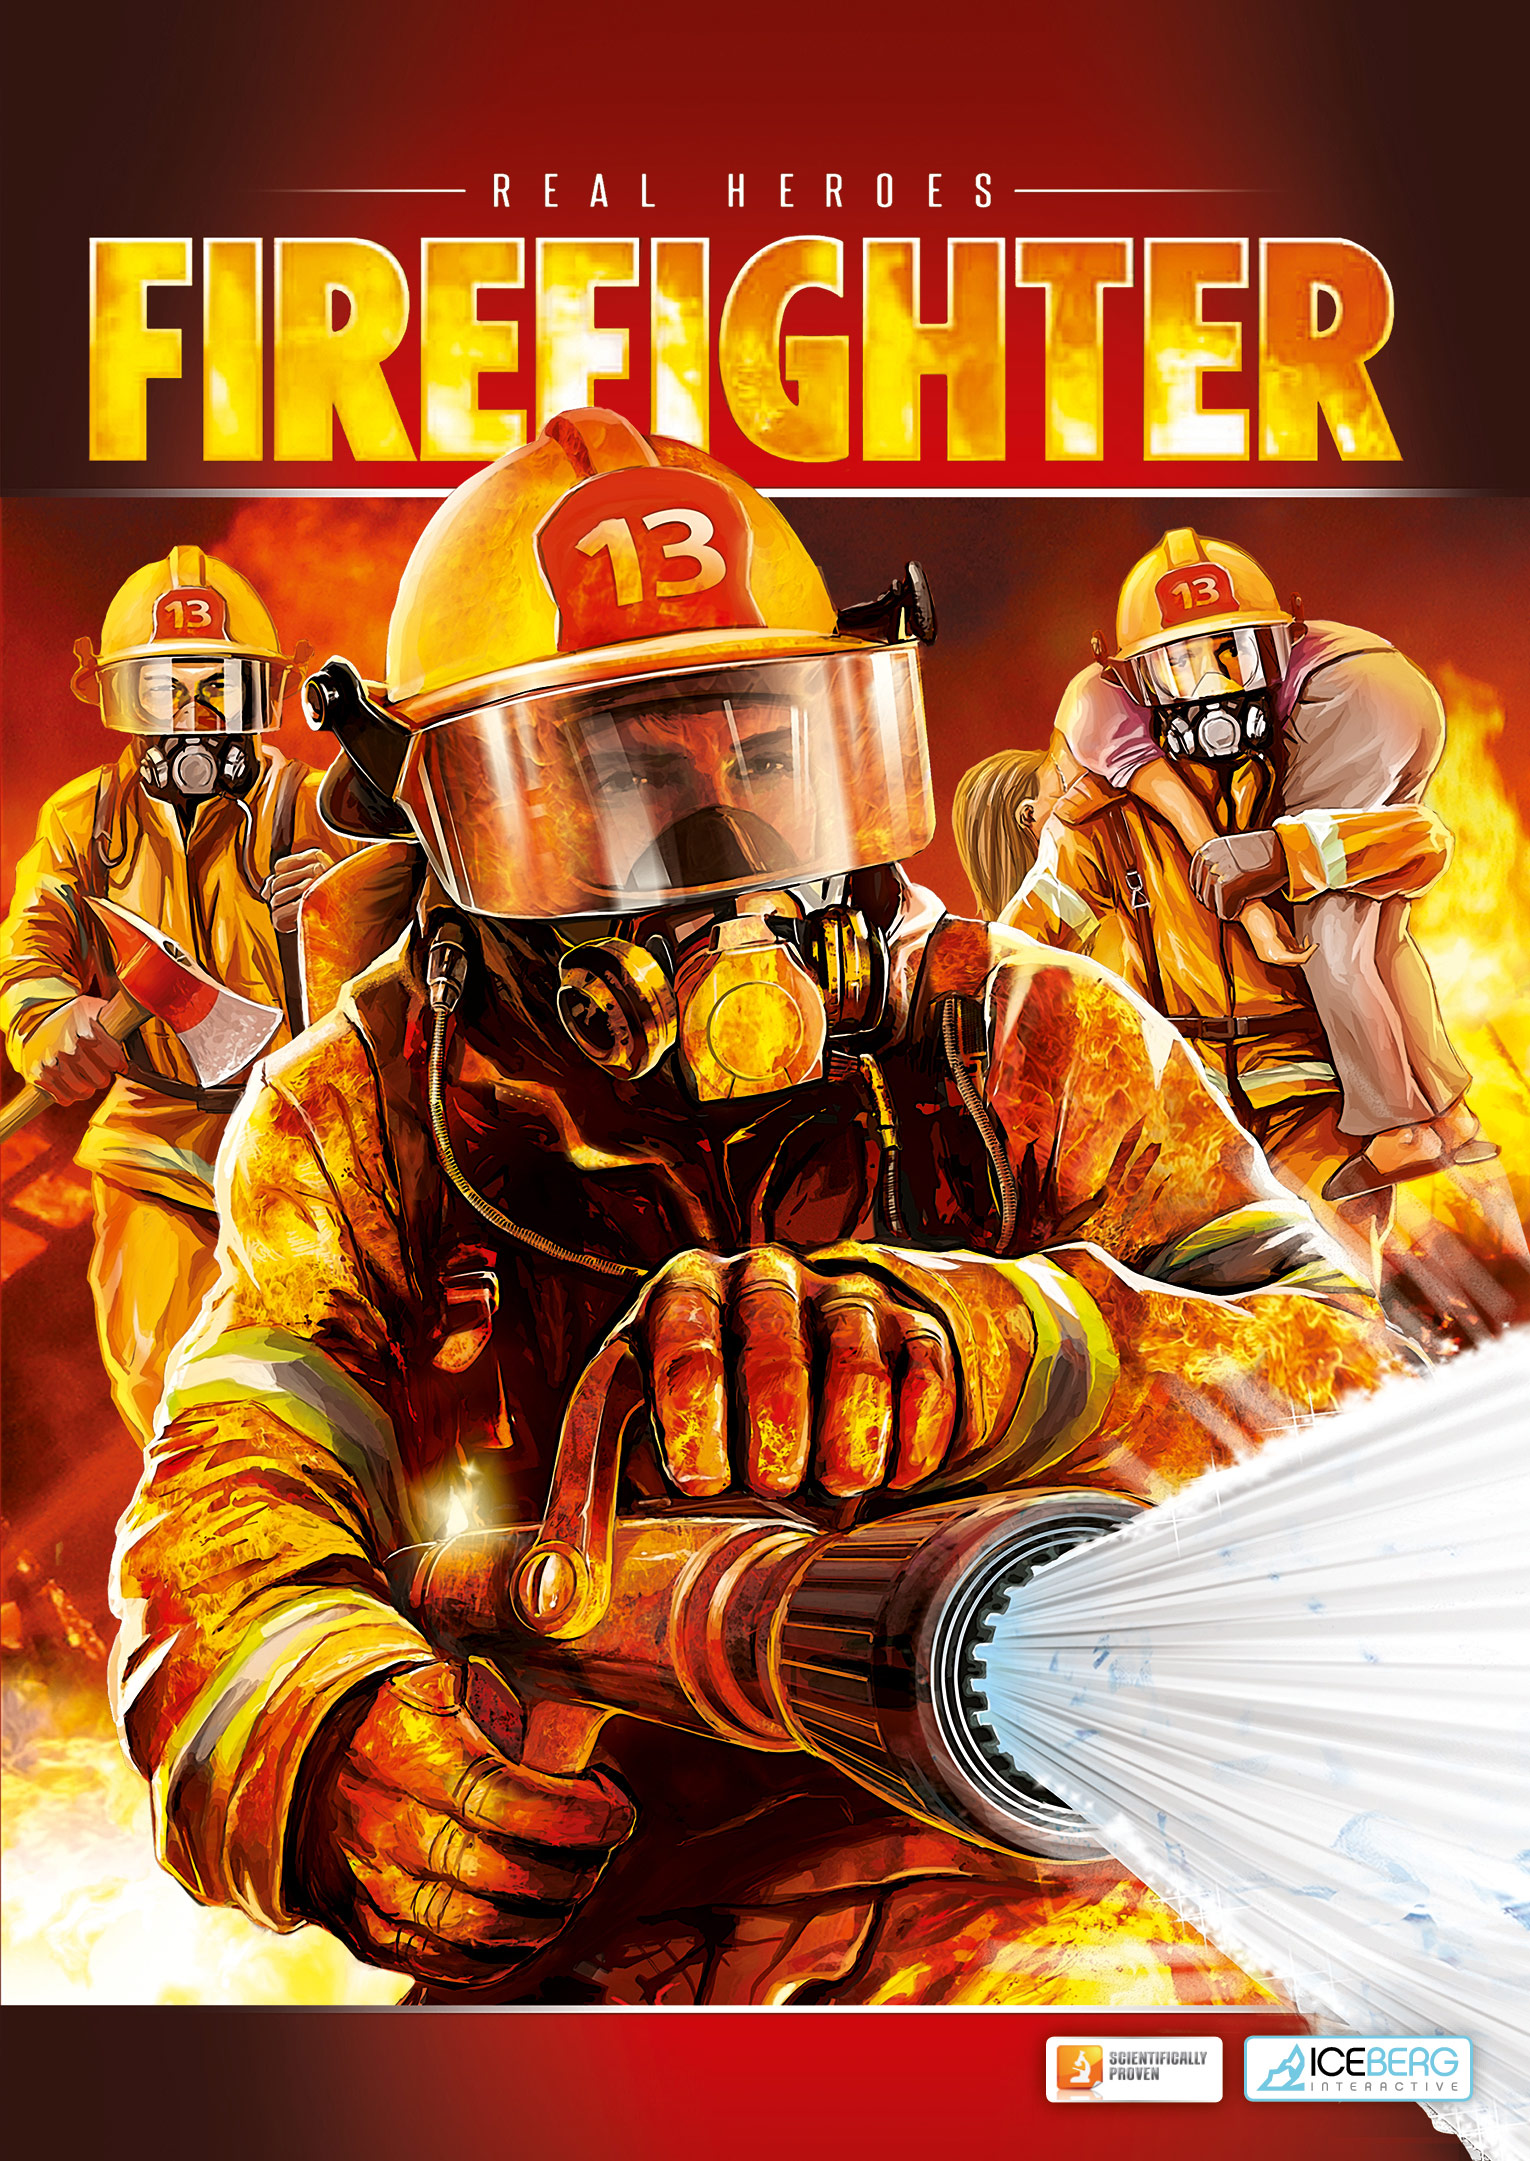 Animated Wallpaper Windows 8 Free Real Heroes Firefighter Windows Wii Game Mod Db